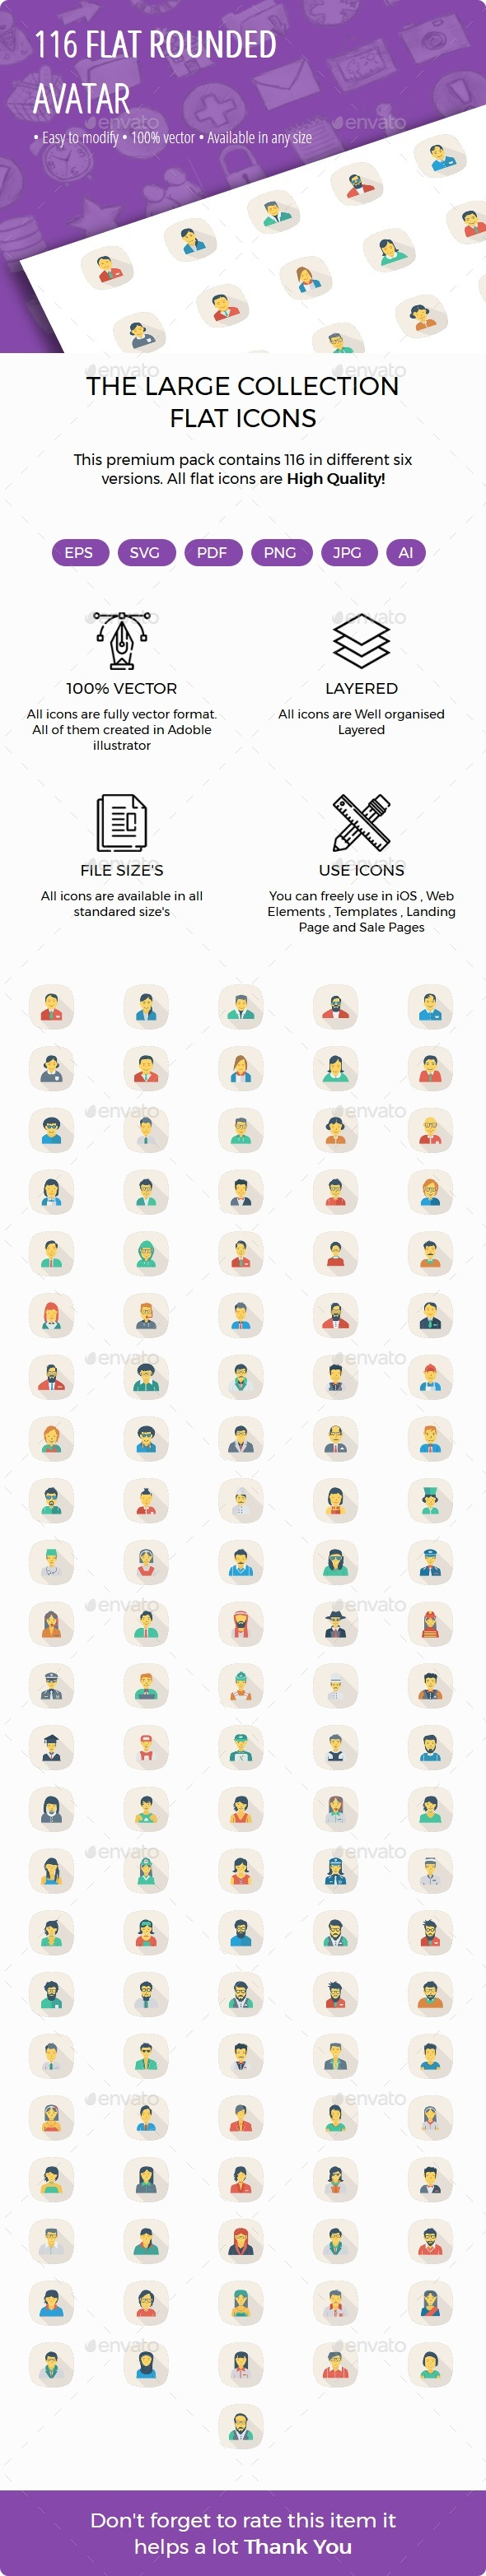 100 Avatar Flat Square Rounded Shadow - Characters Icons